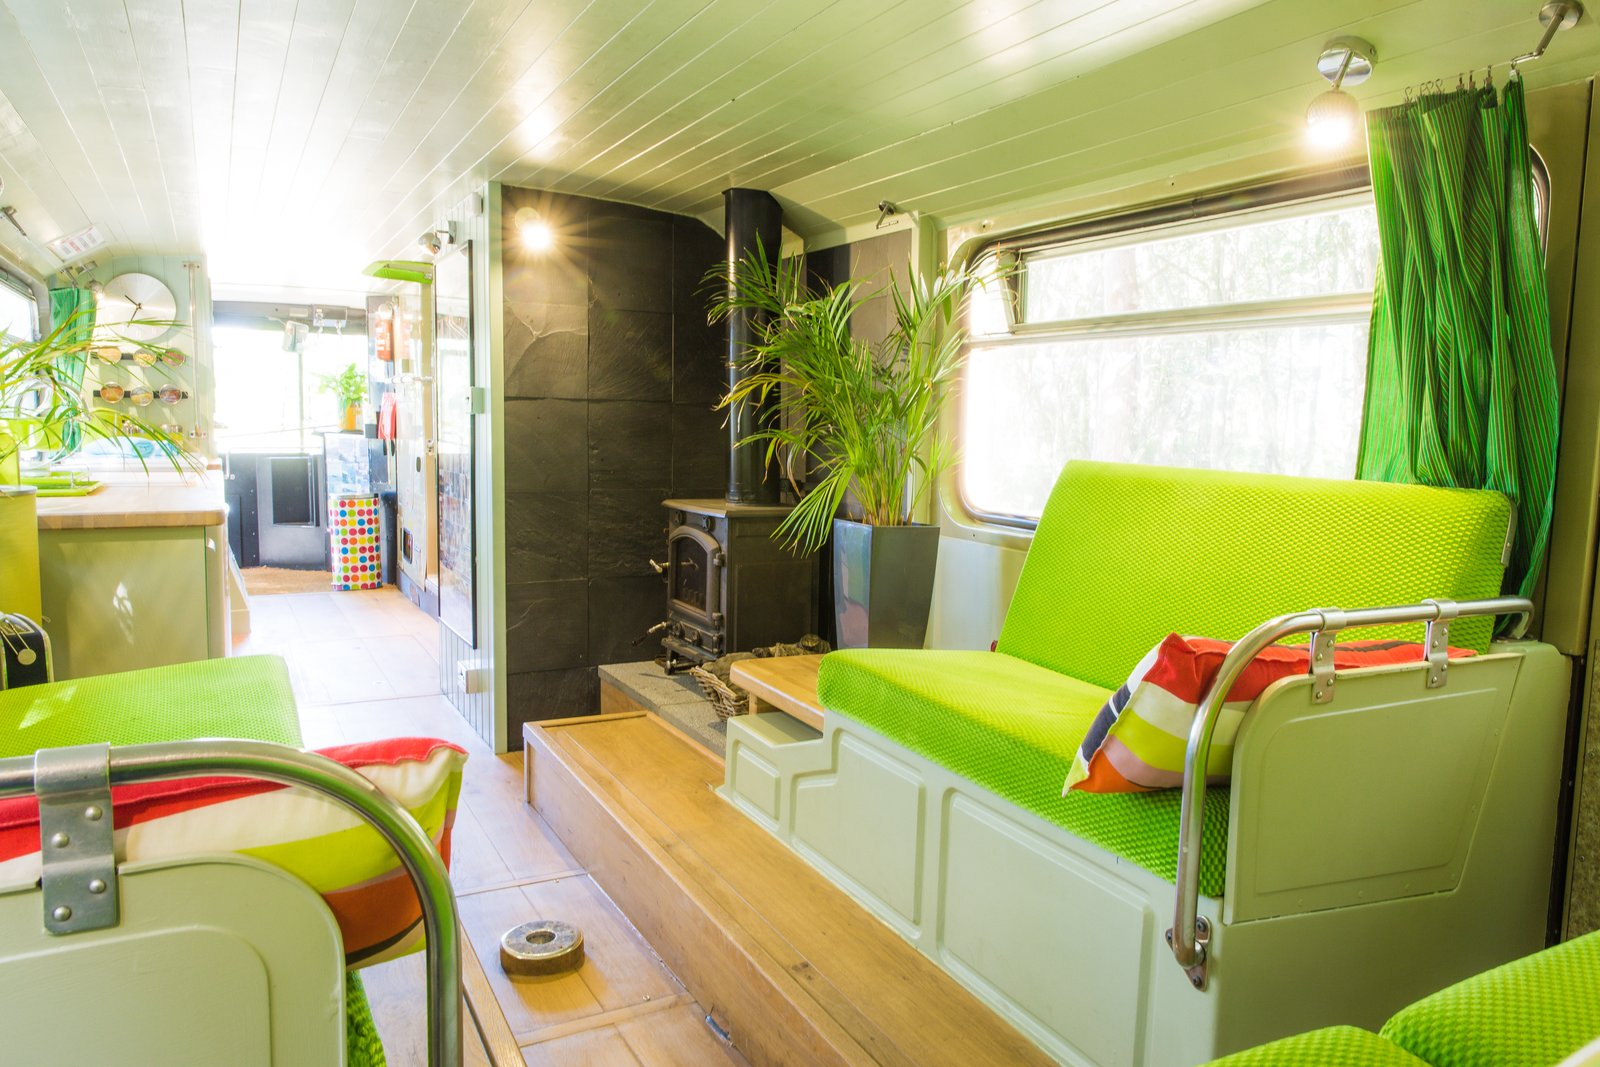 Living Room, Ceiling Lighting, Light Hardwood Floor, Bench, and Wood Burning Fireplace The log-burner fireplace comes in handy during  the winter months.  Photo 3 of 13 in This Double-Decker Bus Offers an Eclectic Glamping Experience